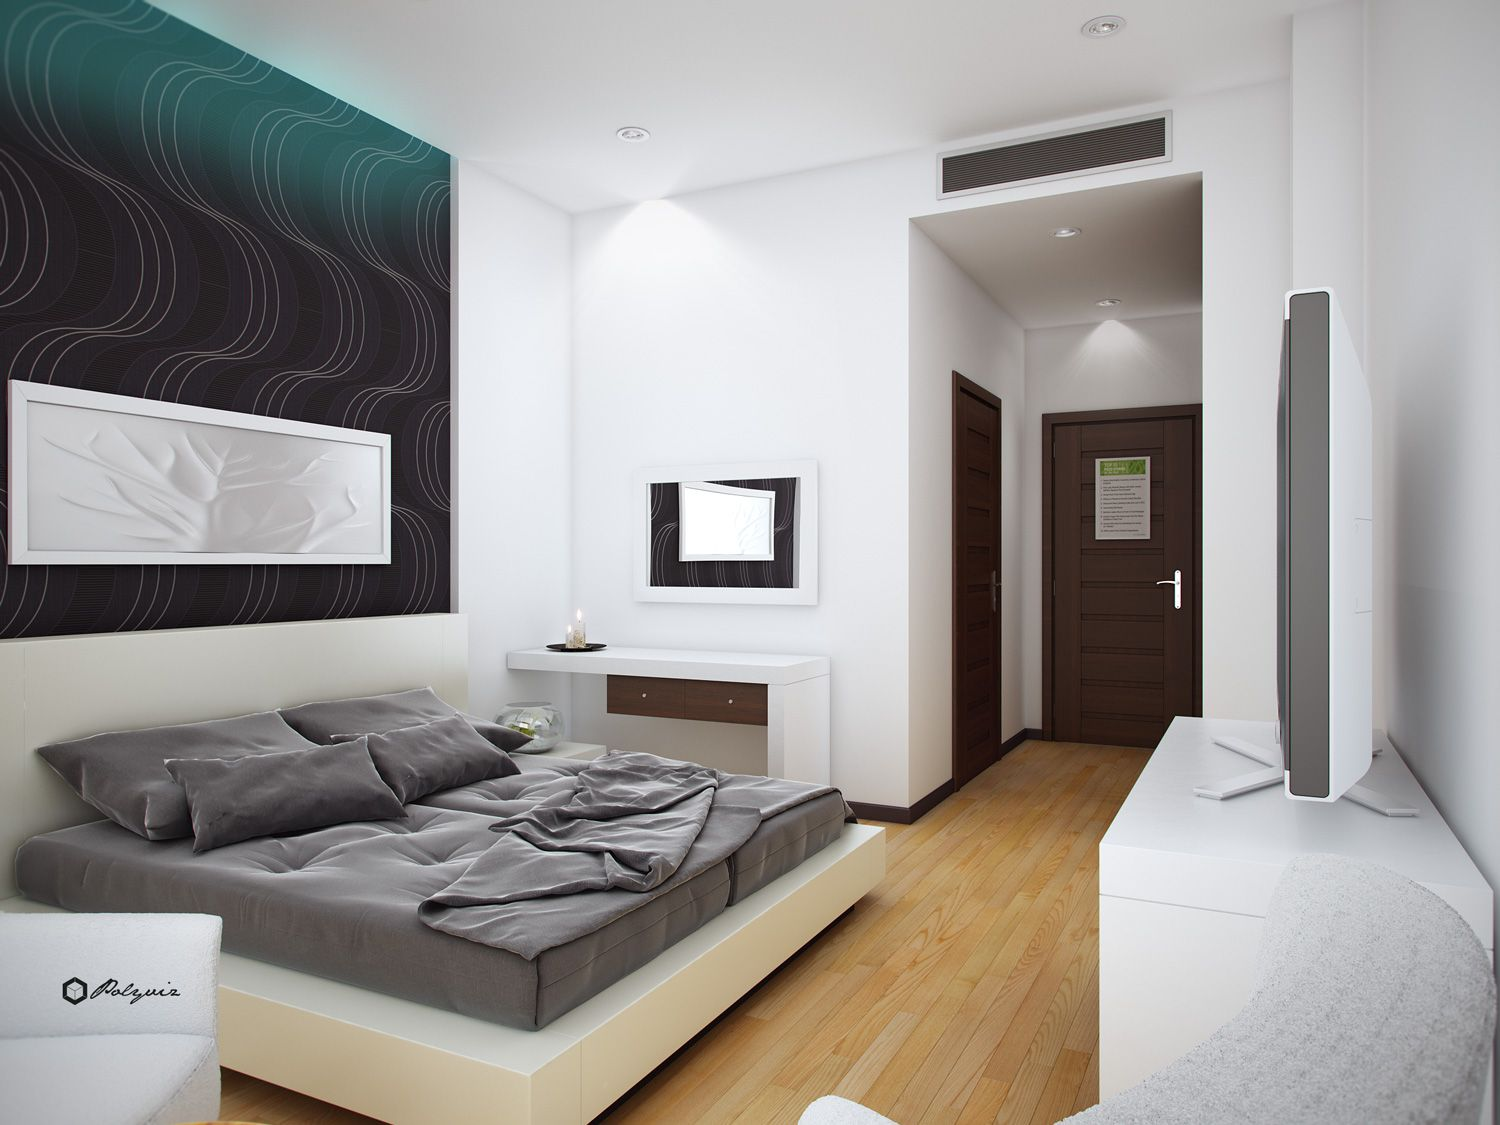 Modern hotel room design google search room design for W hotel bedroom designs